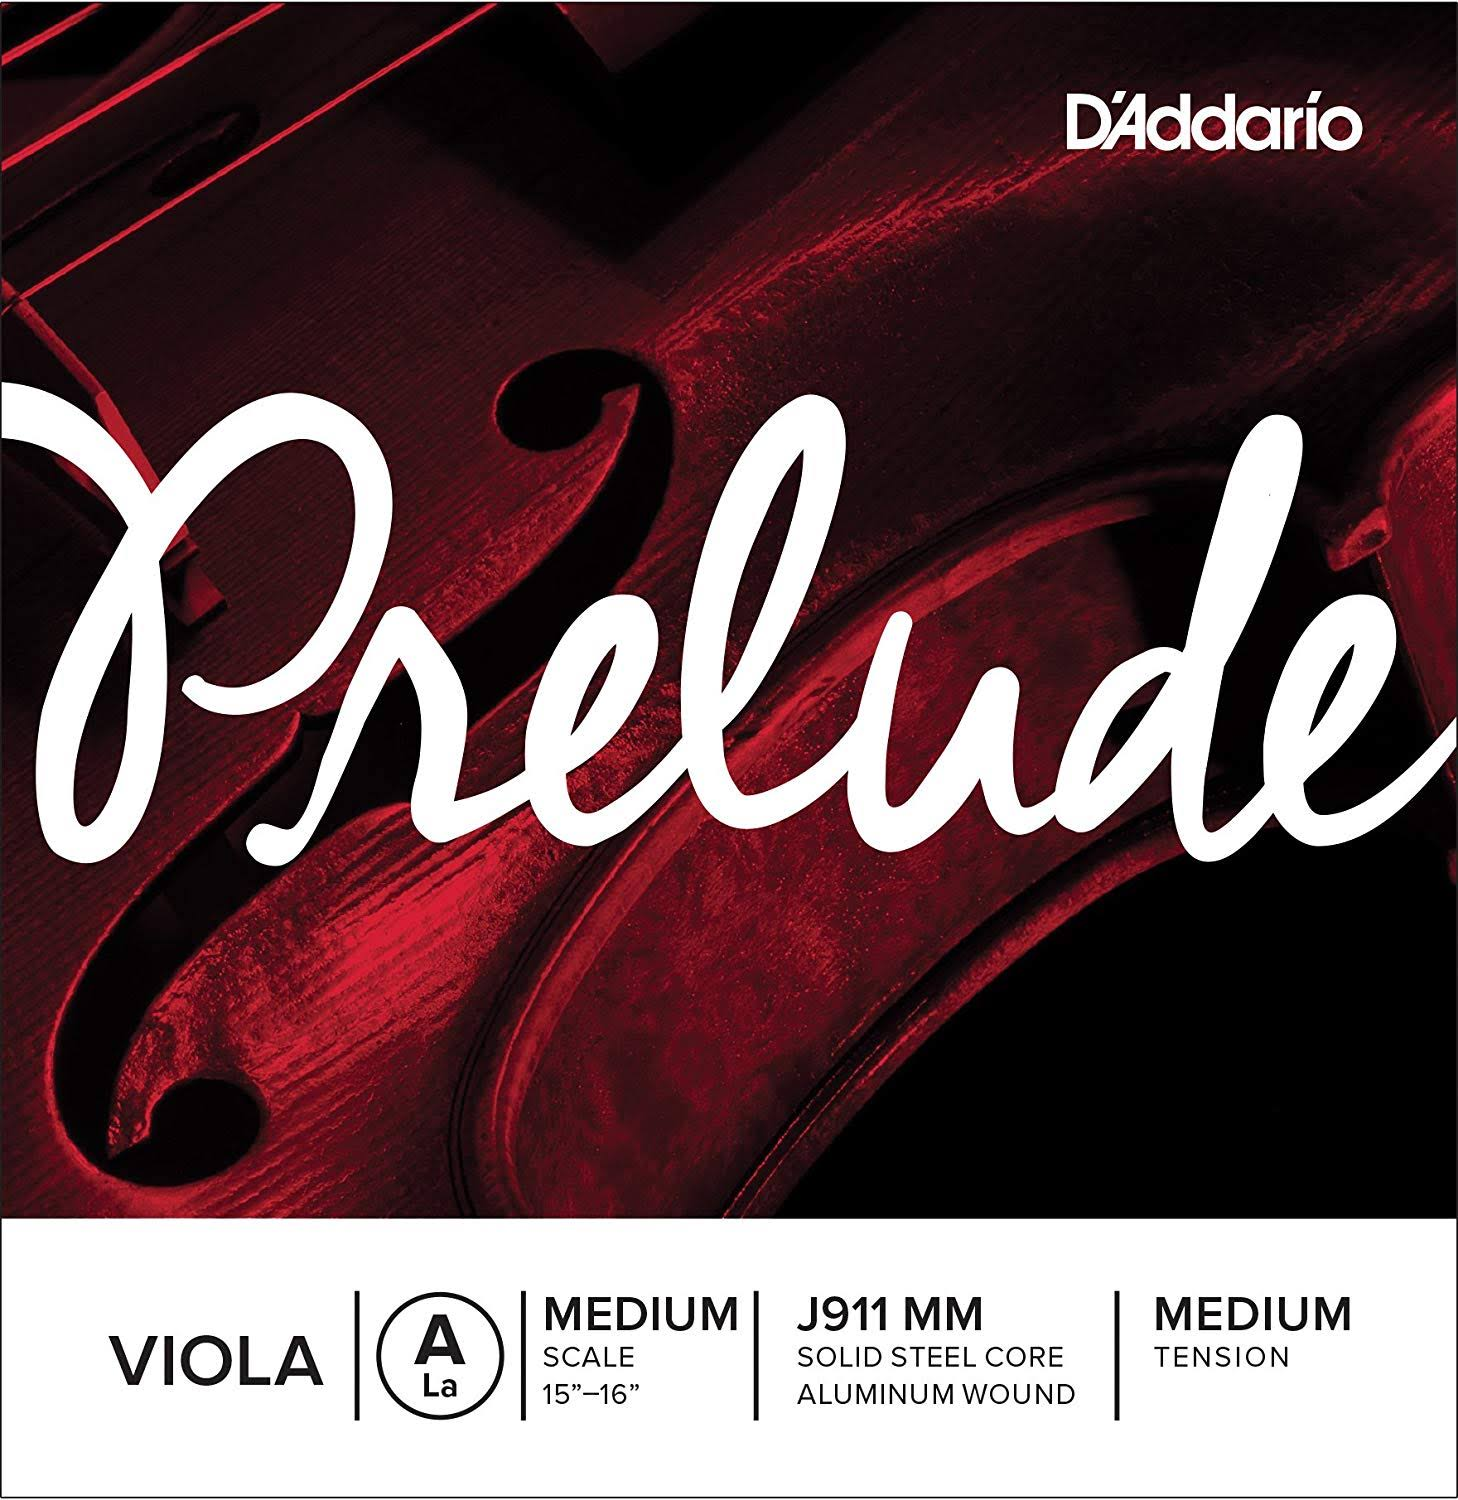 D'Addario Prelude Viola Single A String - Medium Scale, Medium Tension